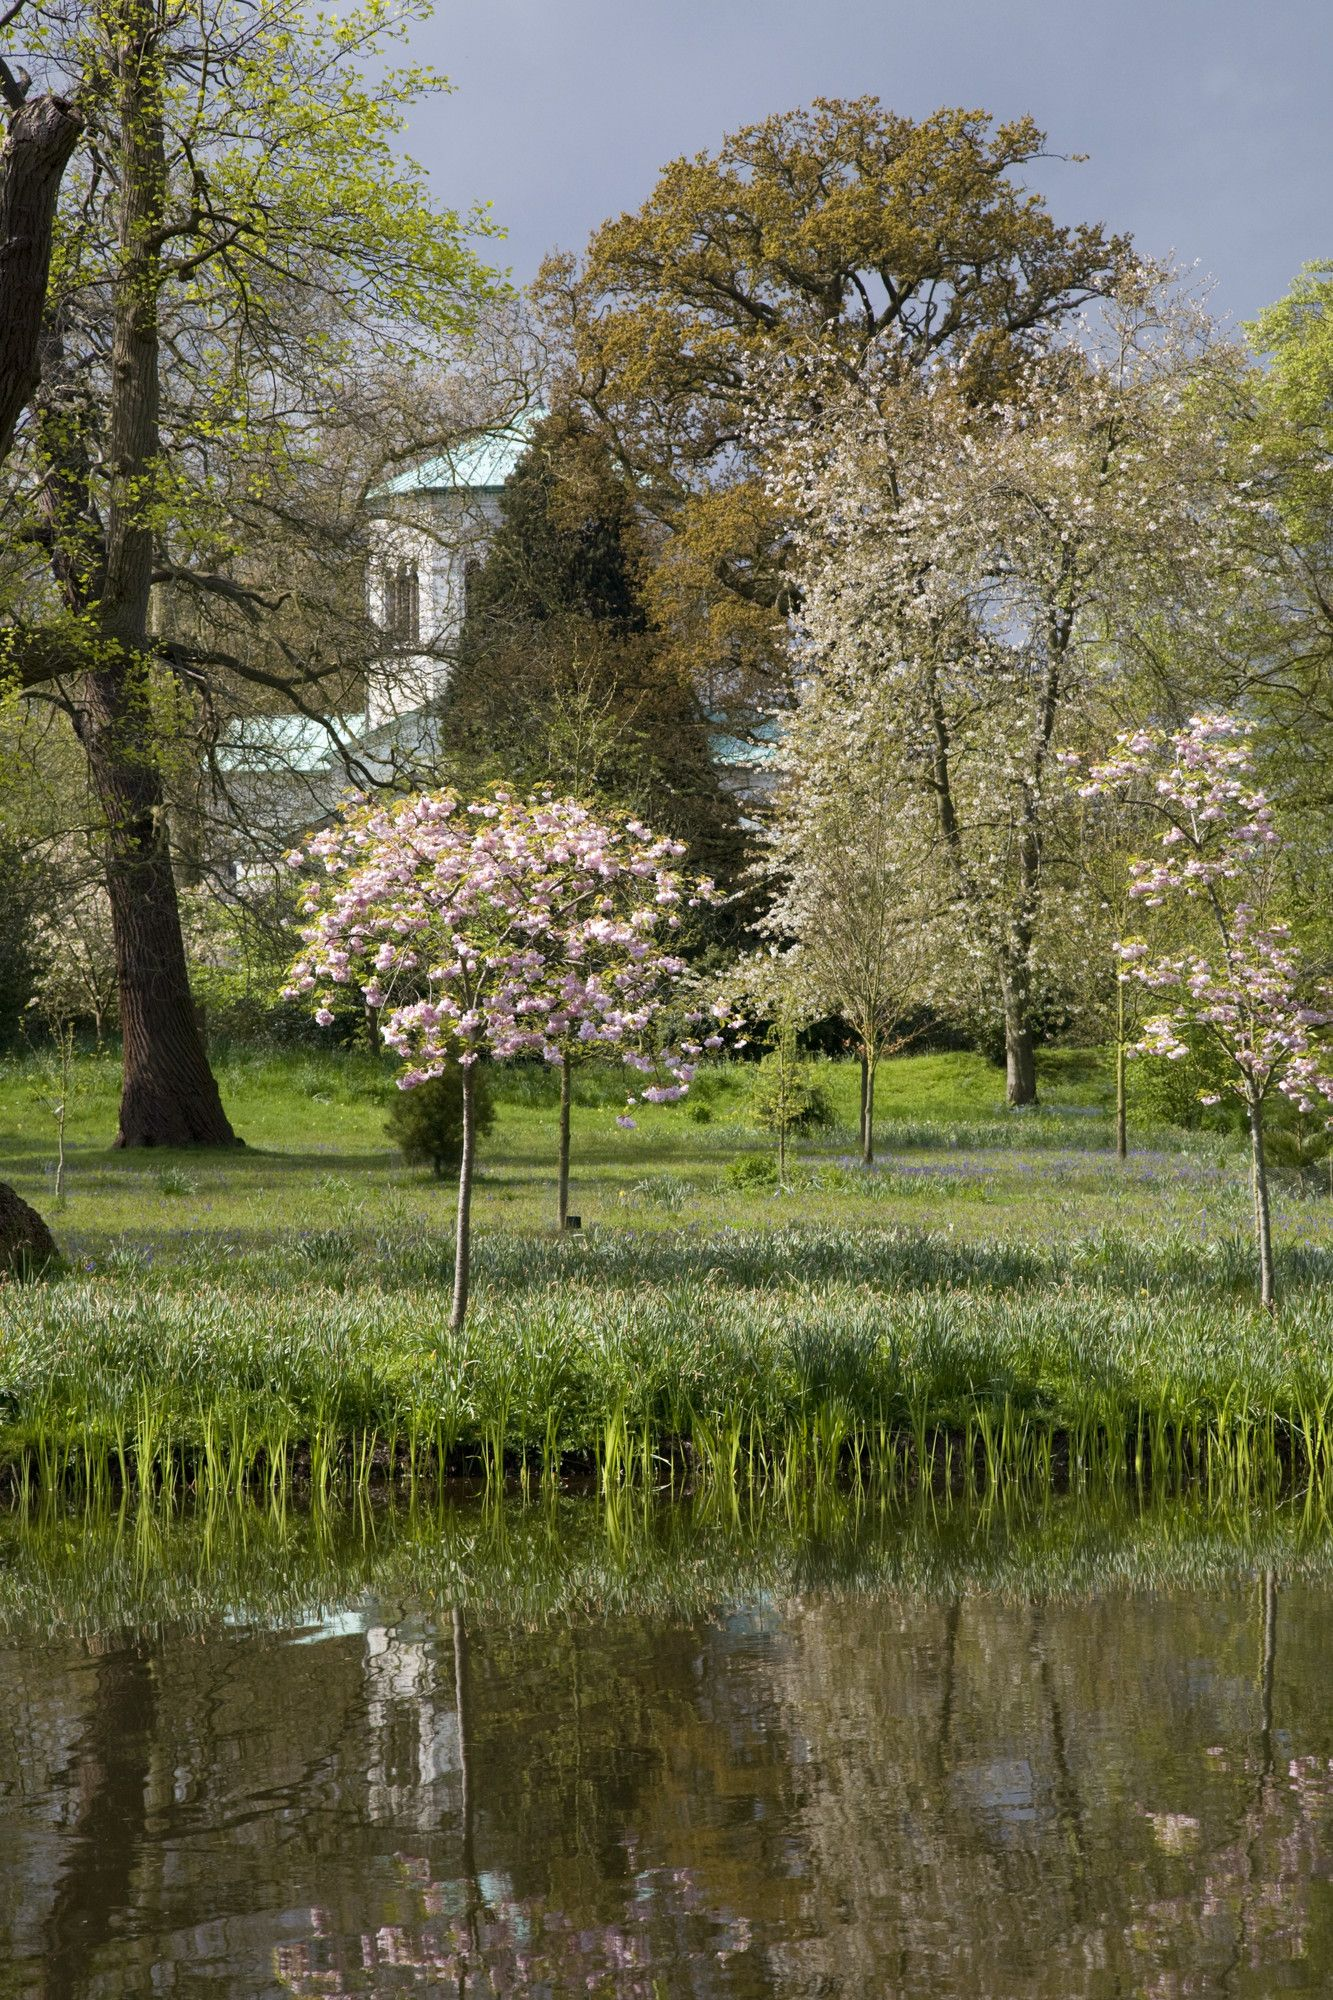 Join us at Royal Frogmore Garden in Windsor on 16th May